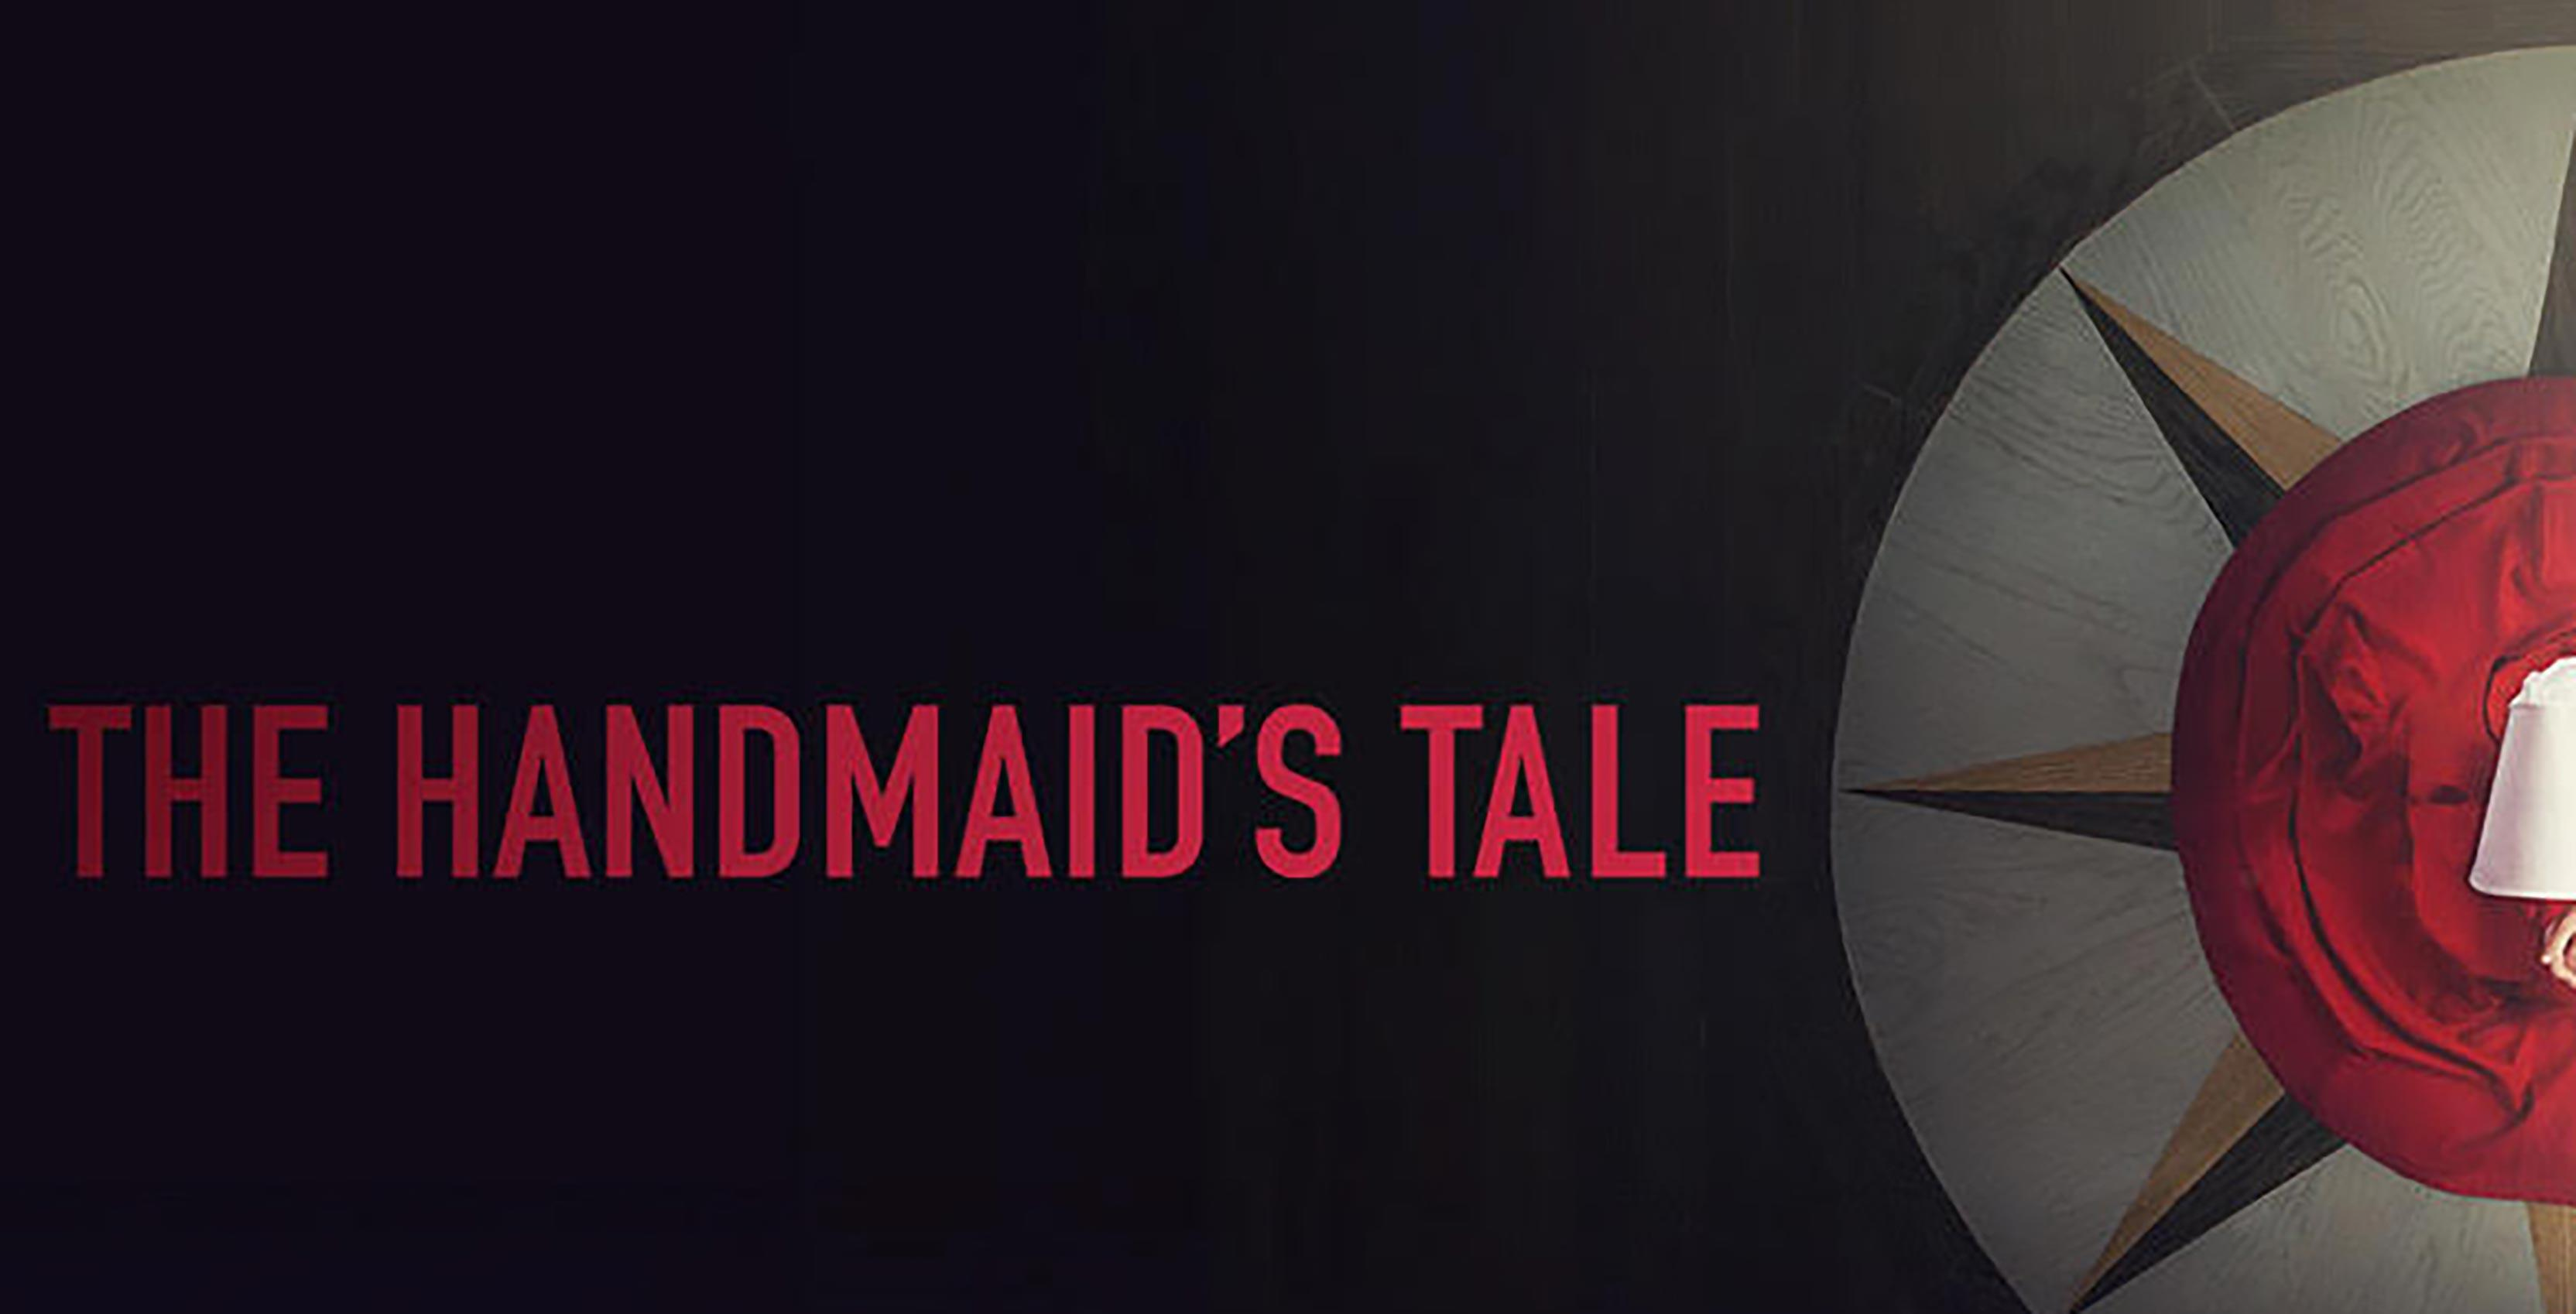 The Handmaid's Tale Season 1 releasing May 1 on iTunes in Canada